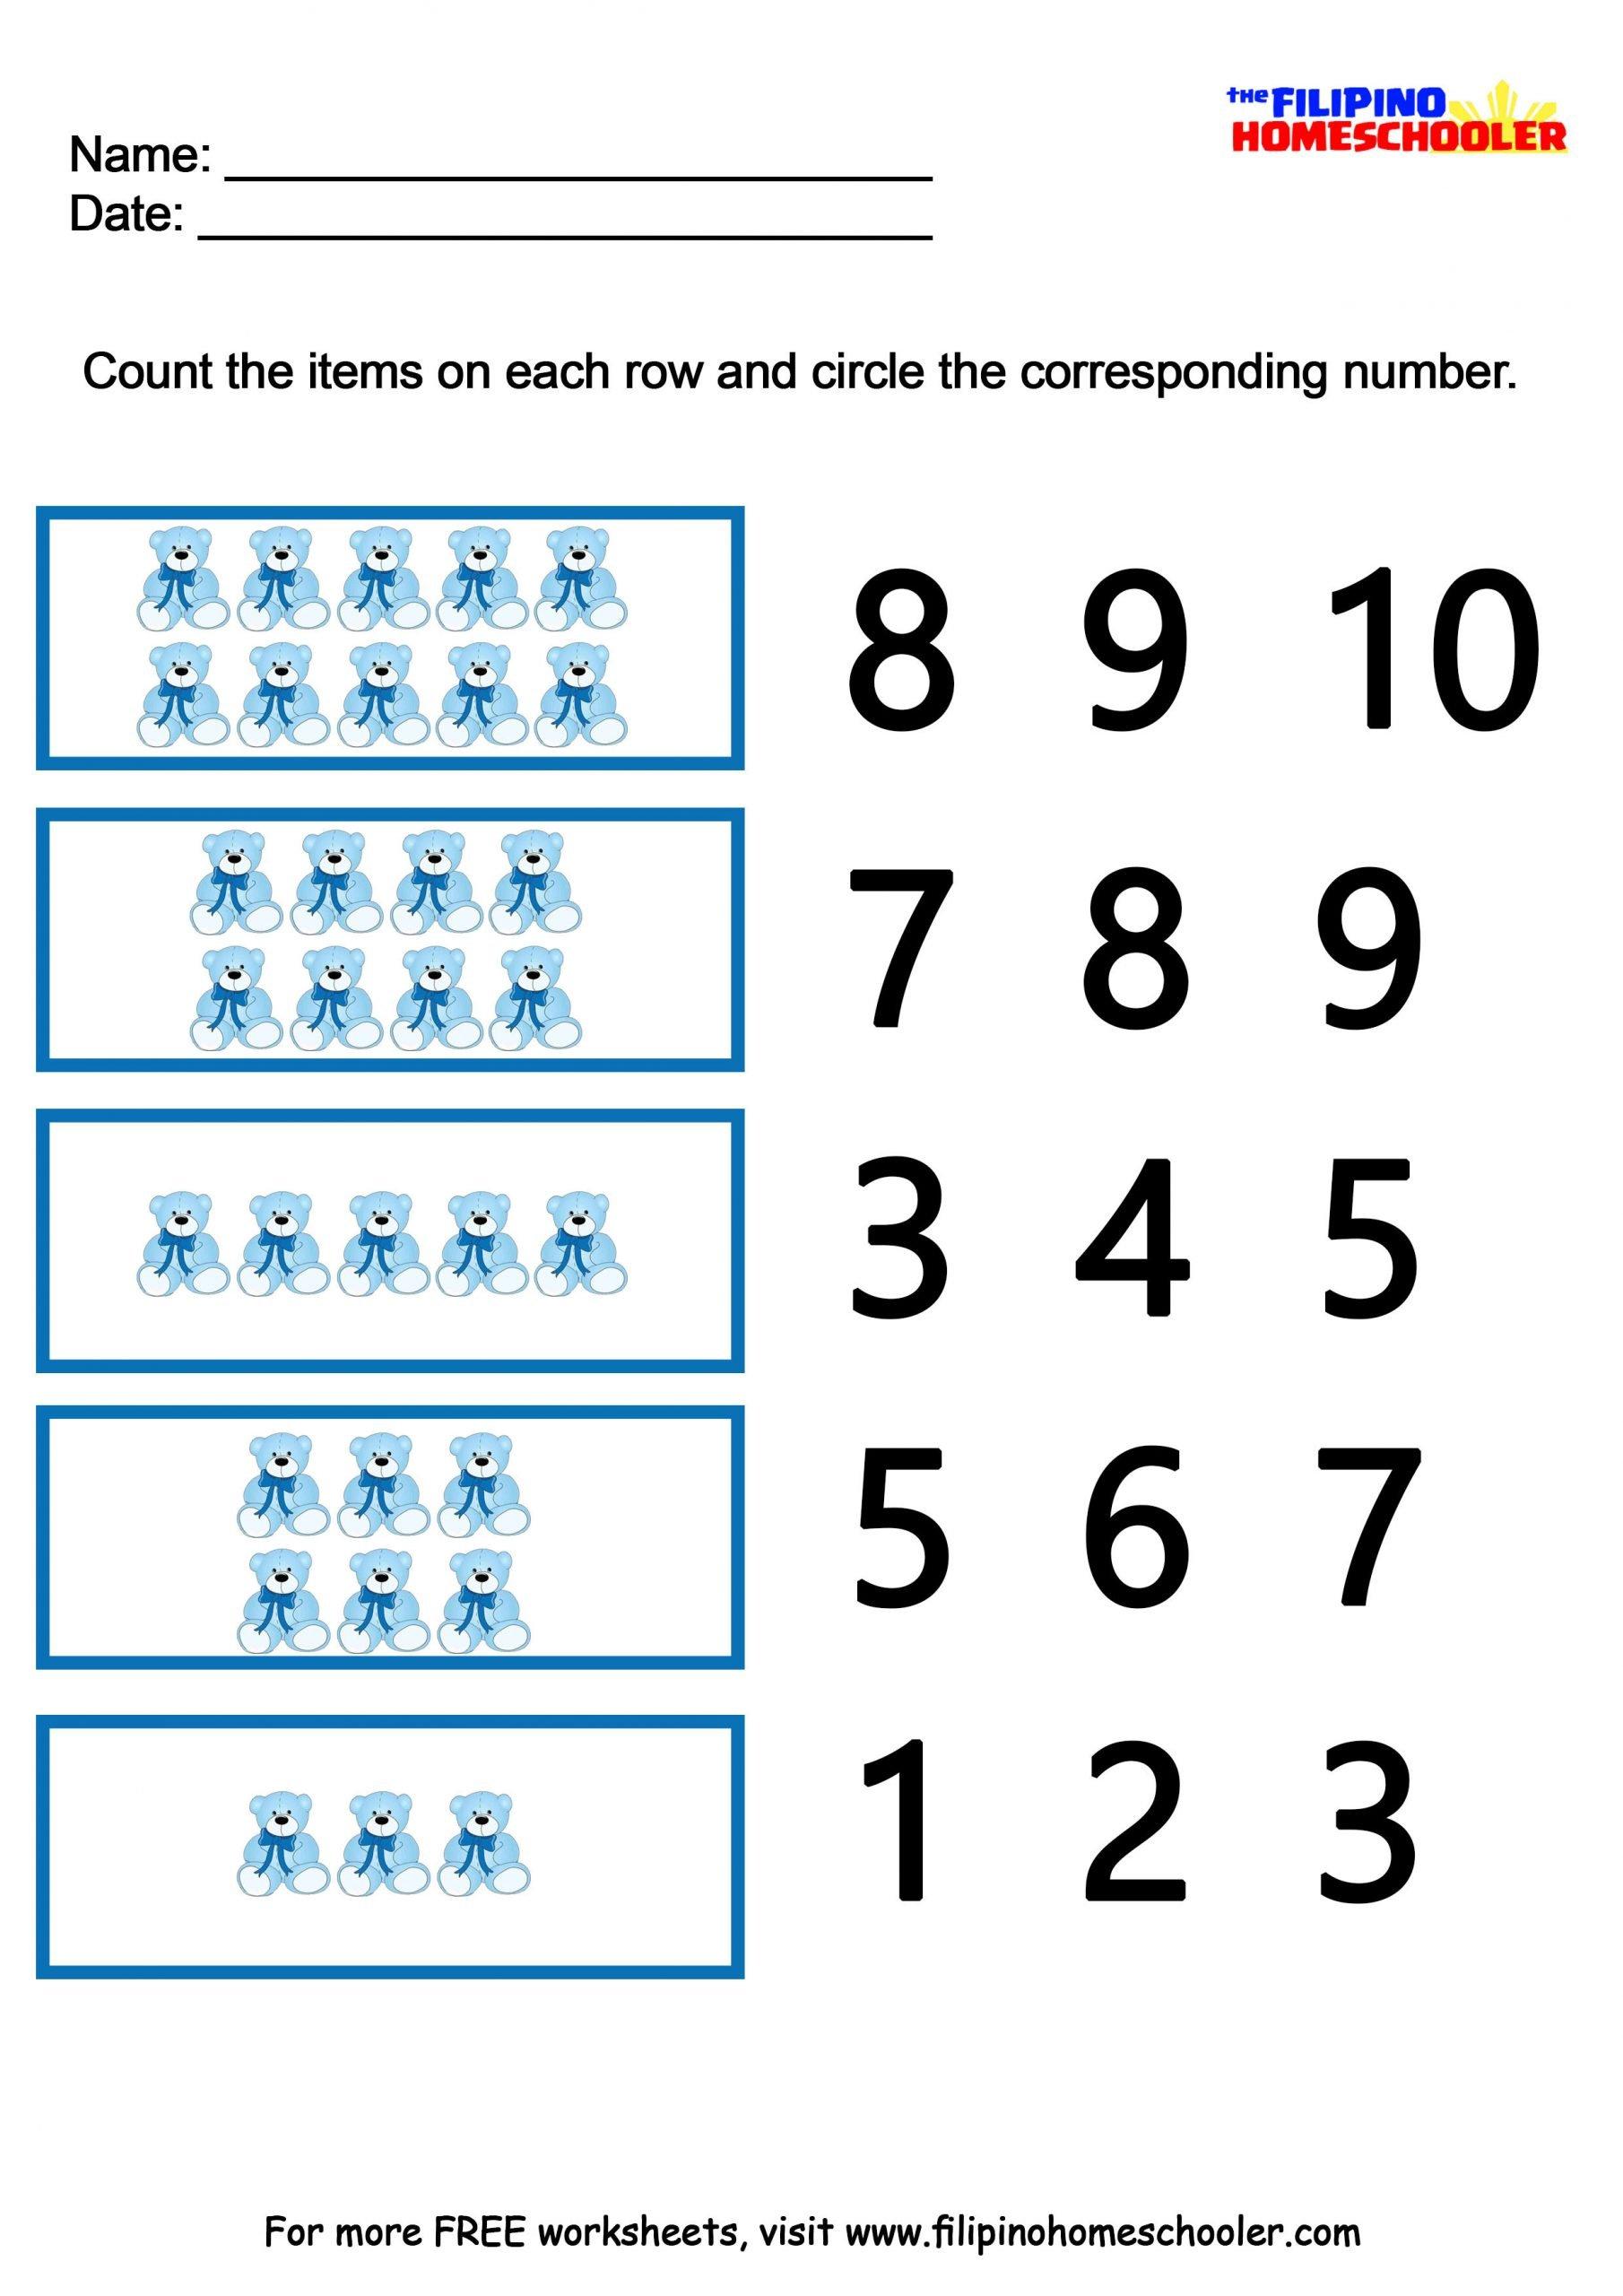 Kindergarten Number Recognition Worksheets Number Recognition Worksheets 1 10 — the Filipino Homeschooler